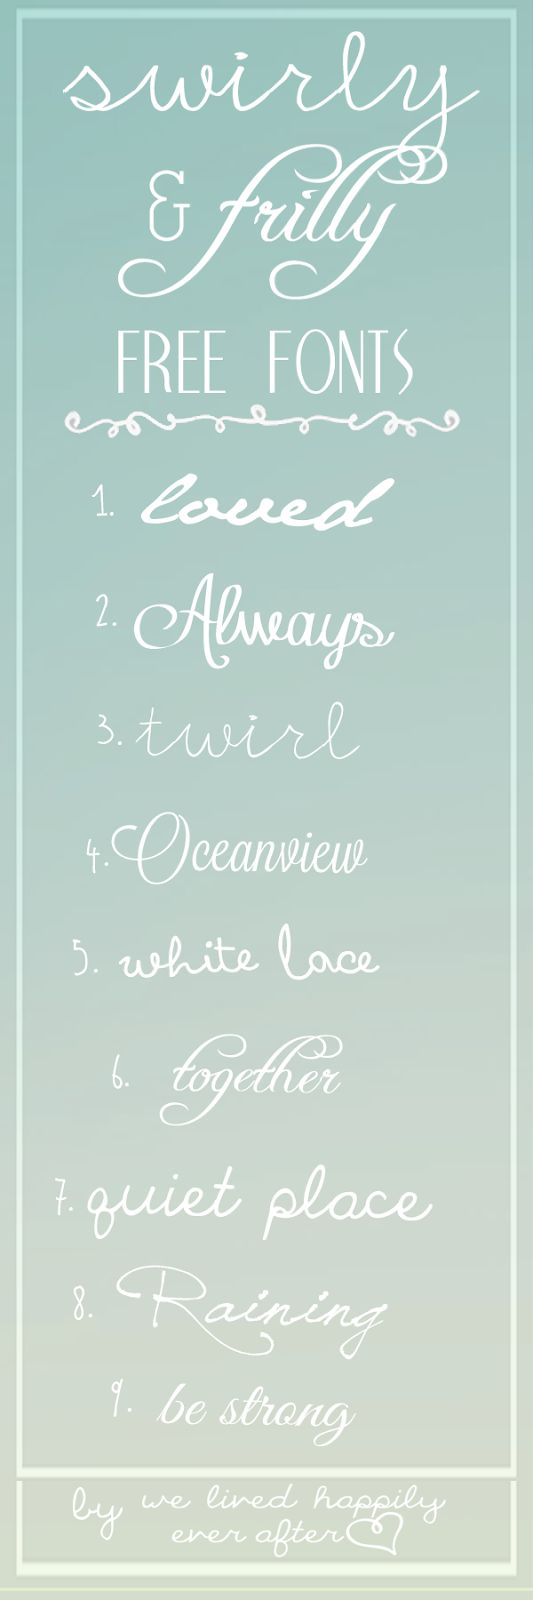 best images about fonts on pinterest free printable fonts and